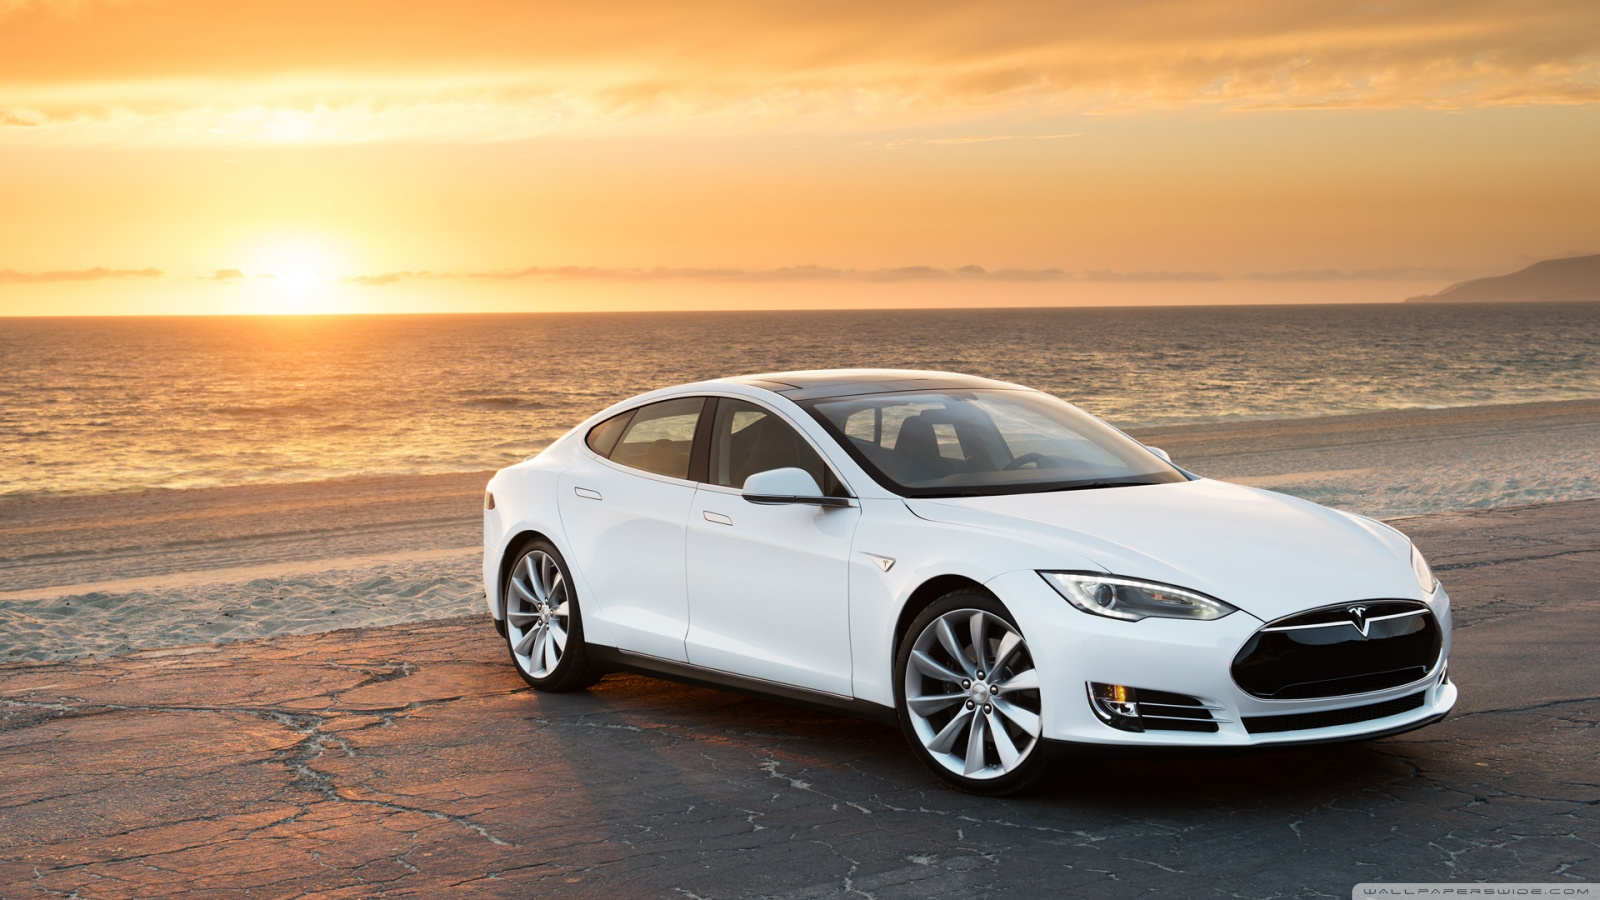 Tesla Model S Wallpaper 1600x900